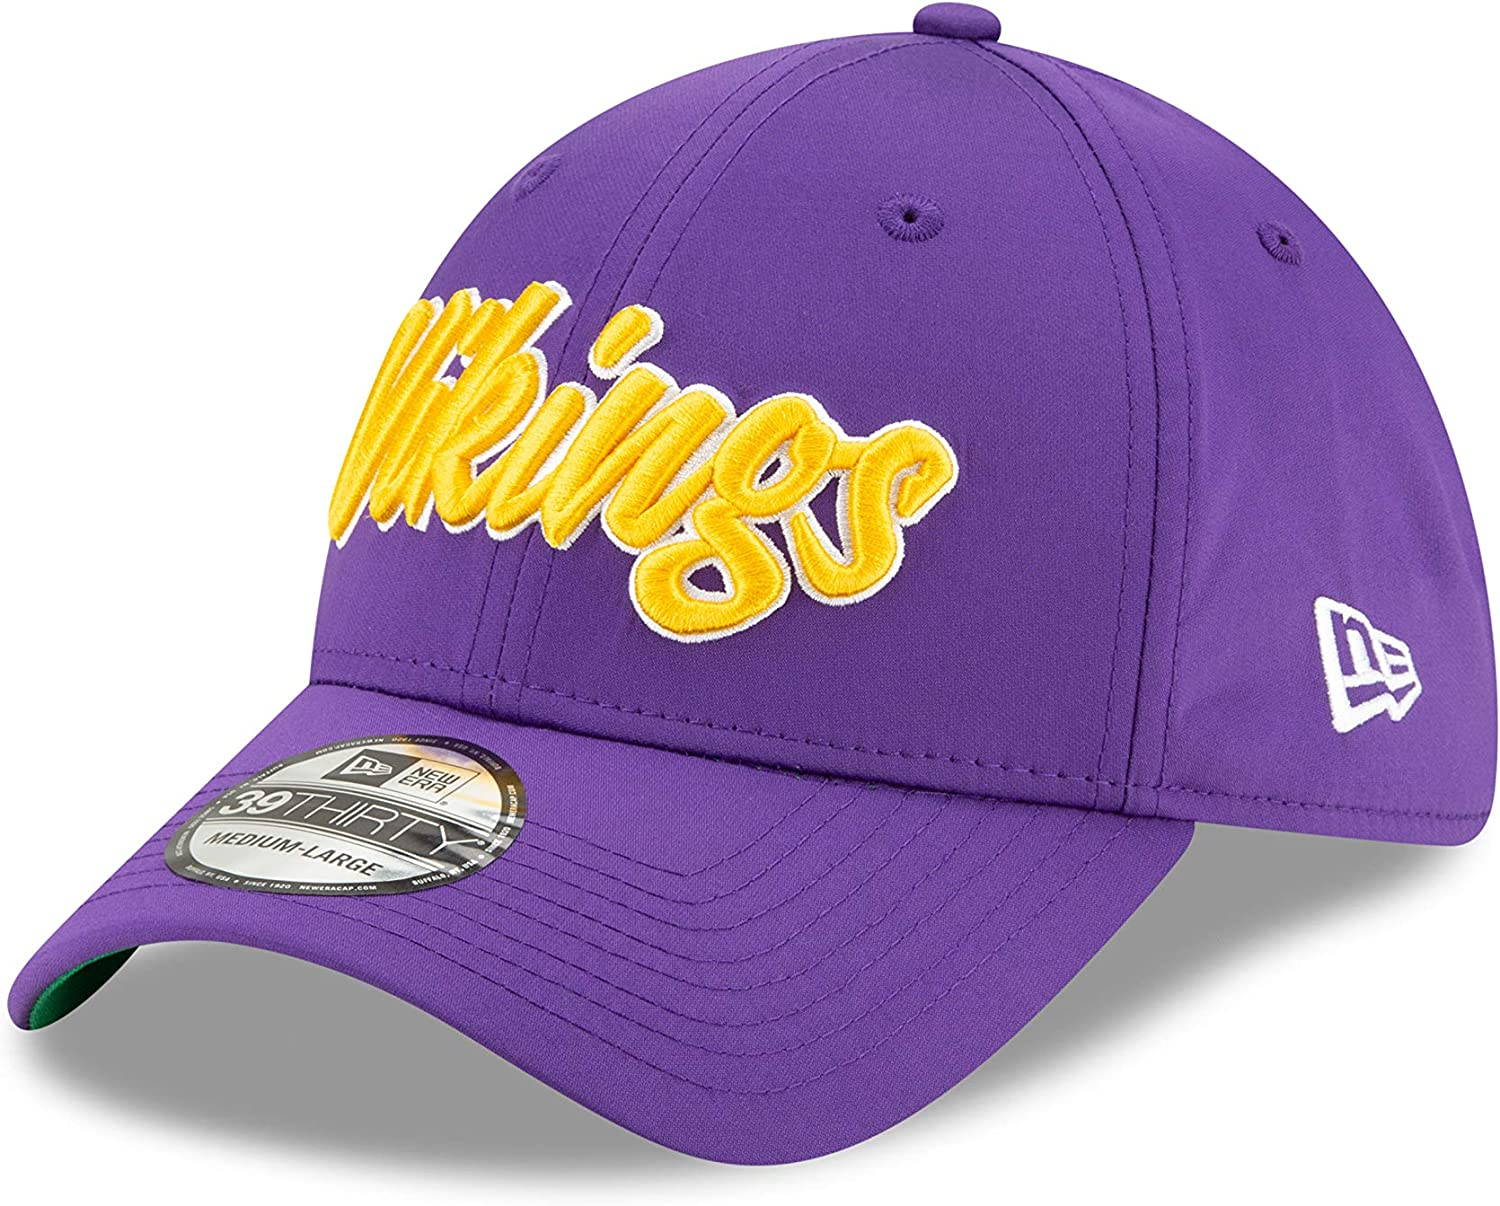 New Era Men's Minnesota Vikings Cap Hat Sideline Home NFL Football 100 Season